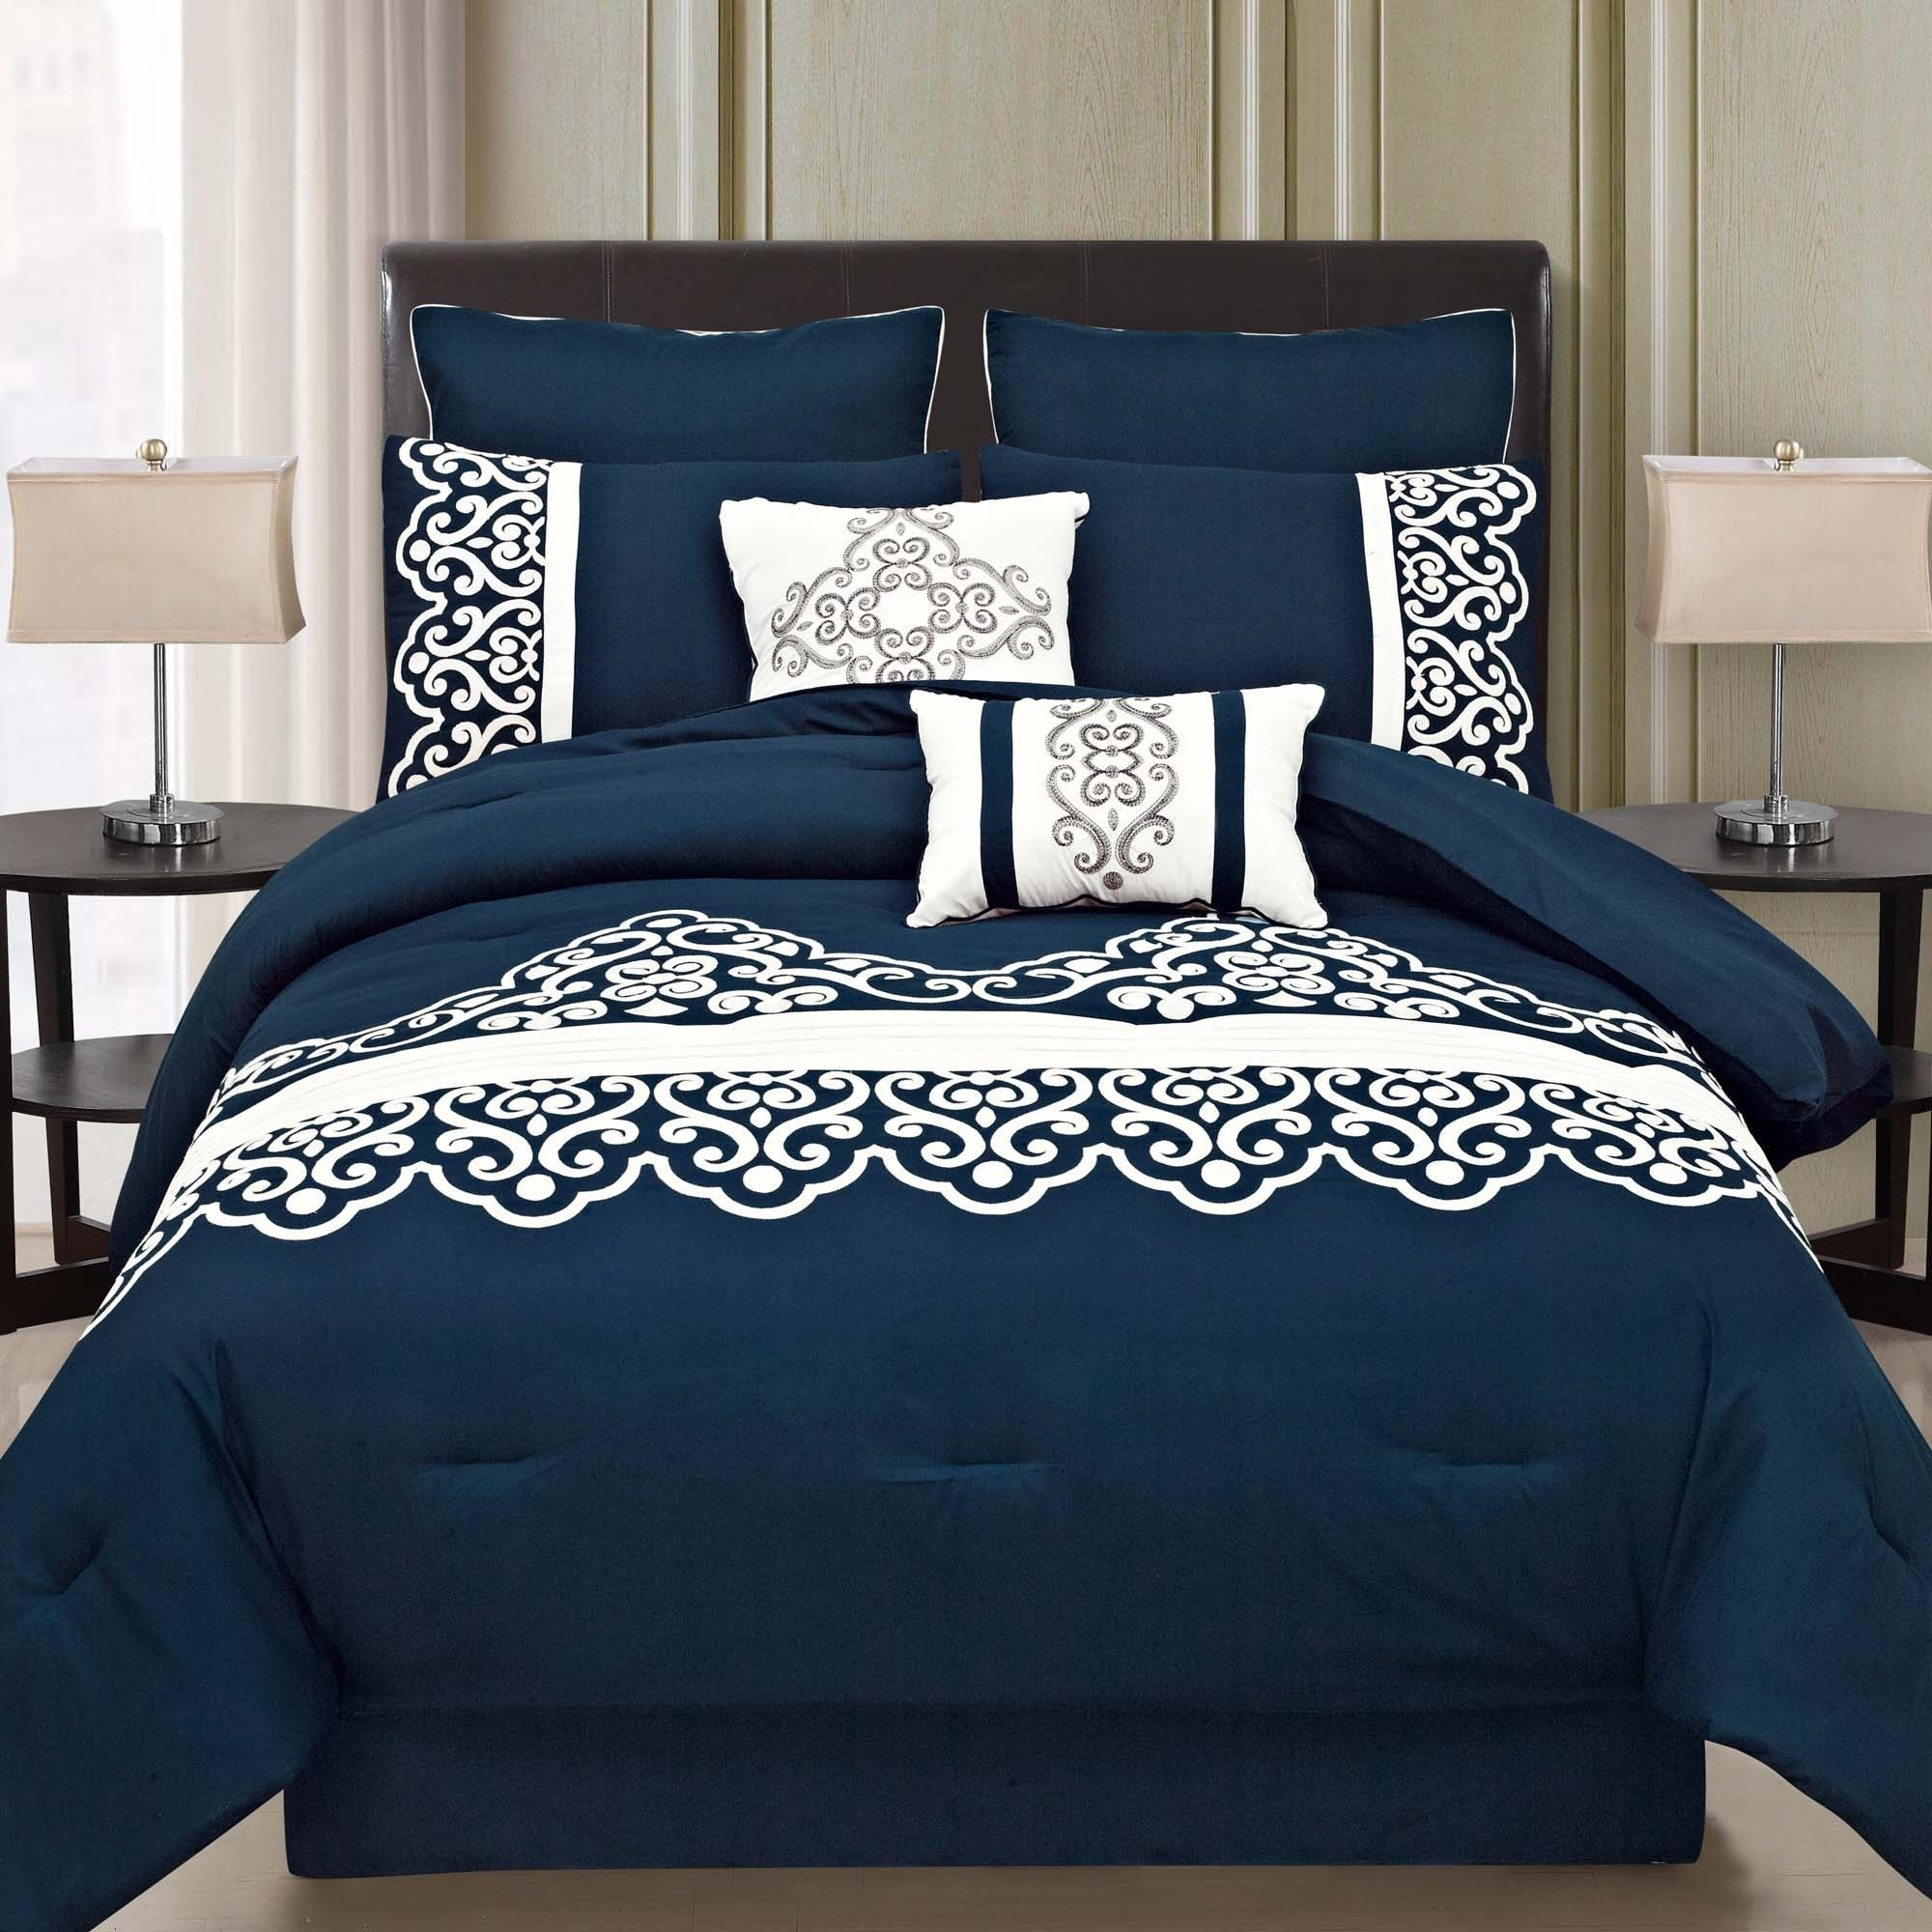 This Royal Blue Bedding Set Features A White Motif Pattern